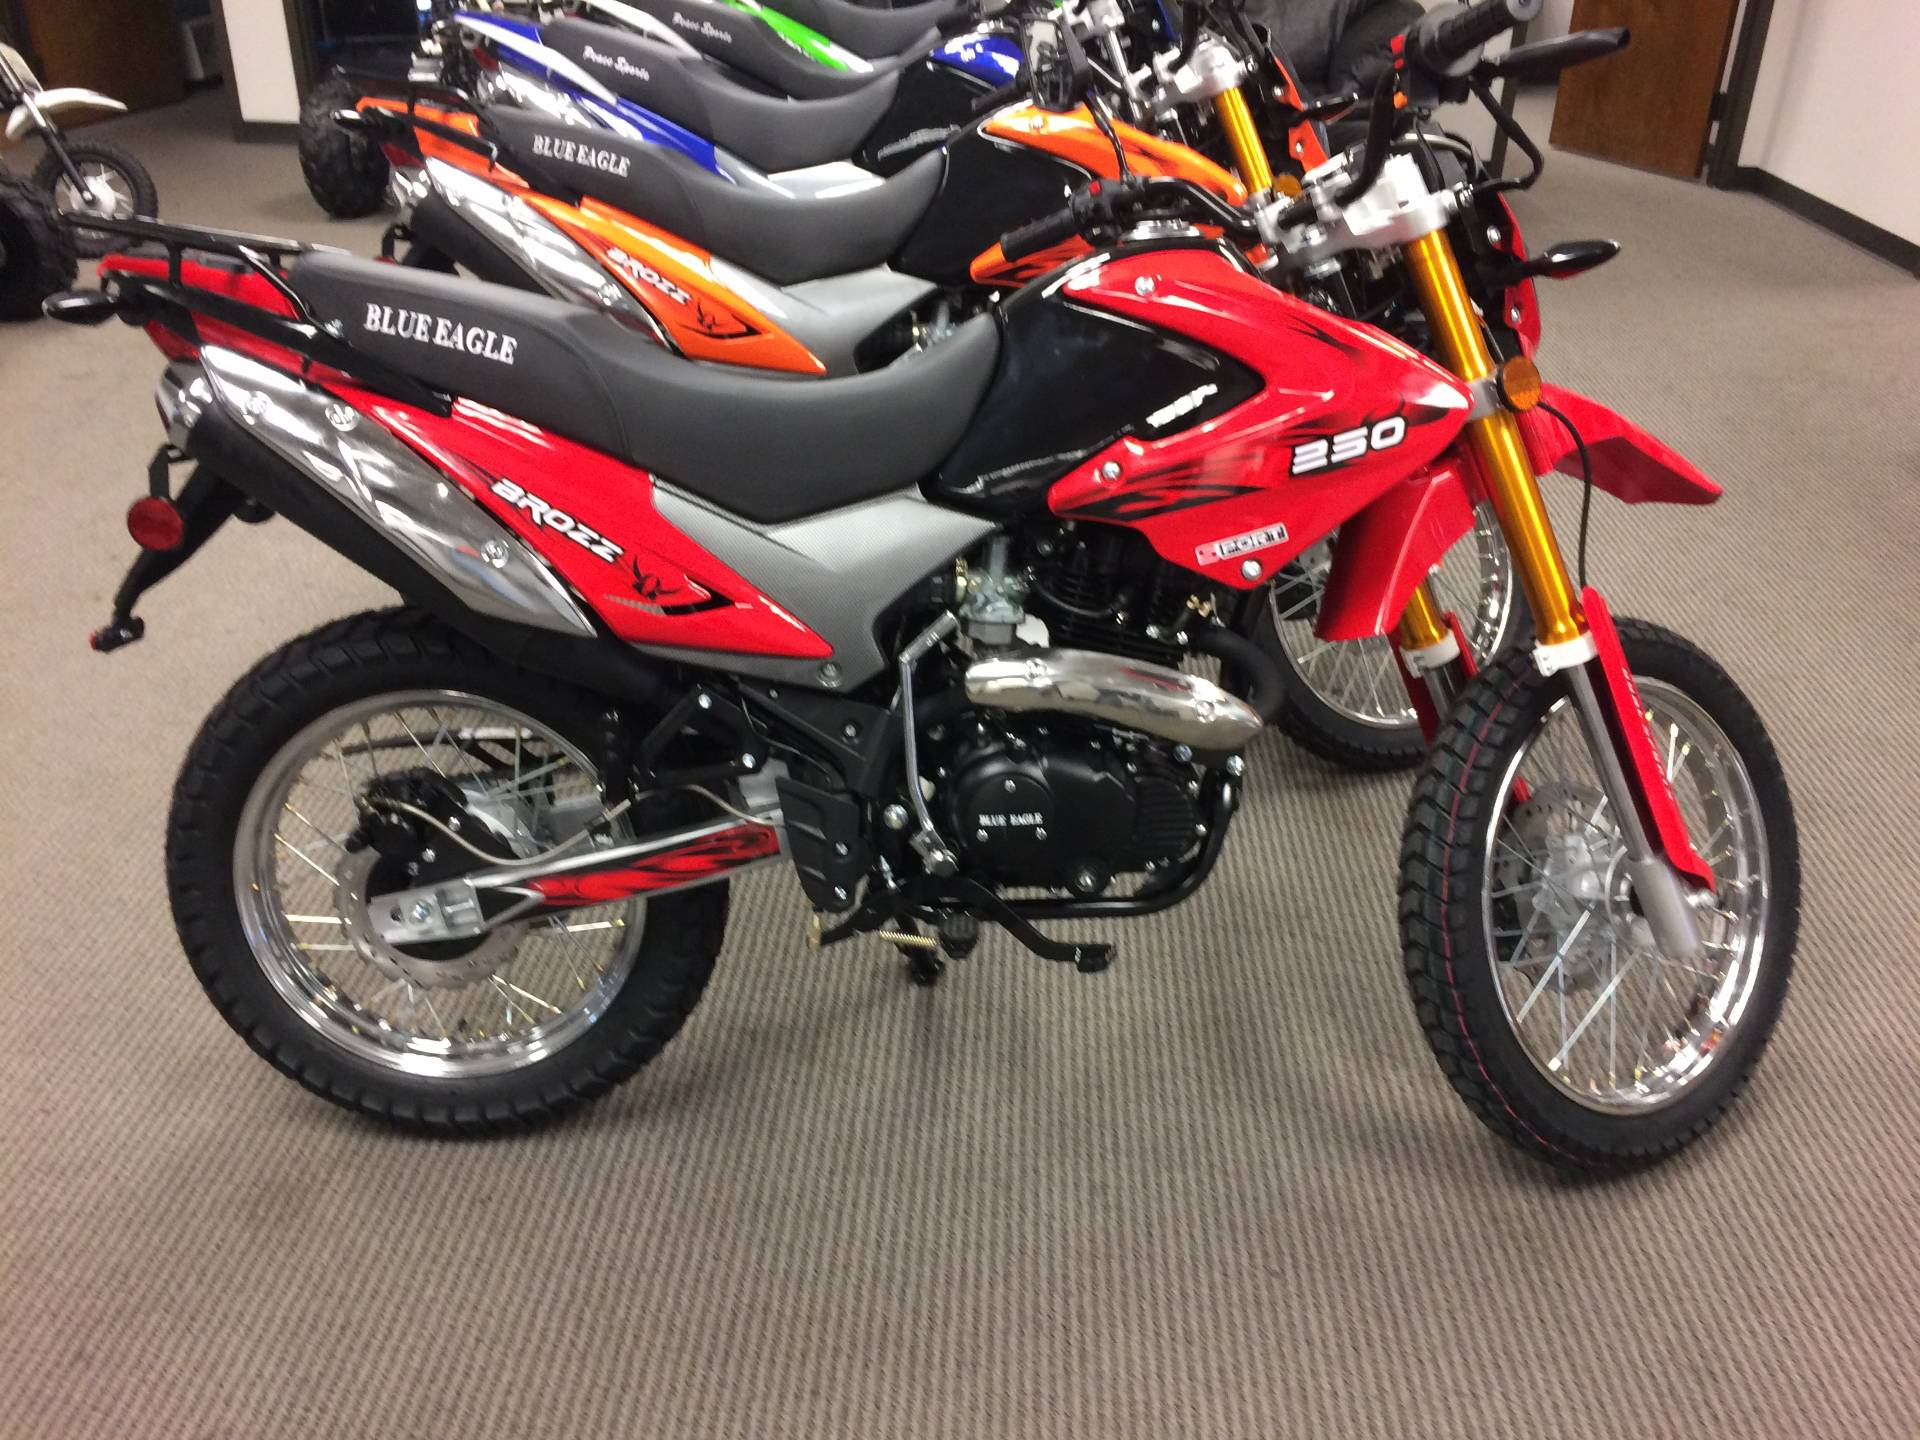 2018 Bashan Blue Eagle Brozz 250 in Norcross, Georgia